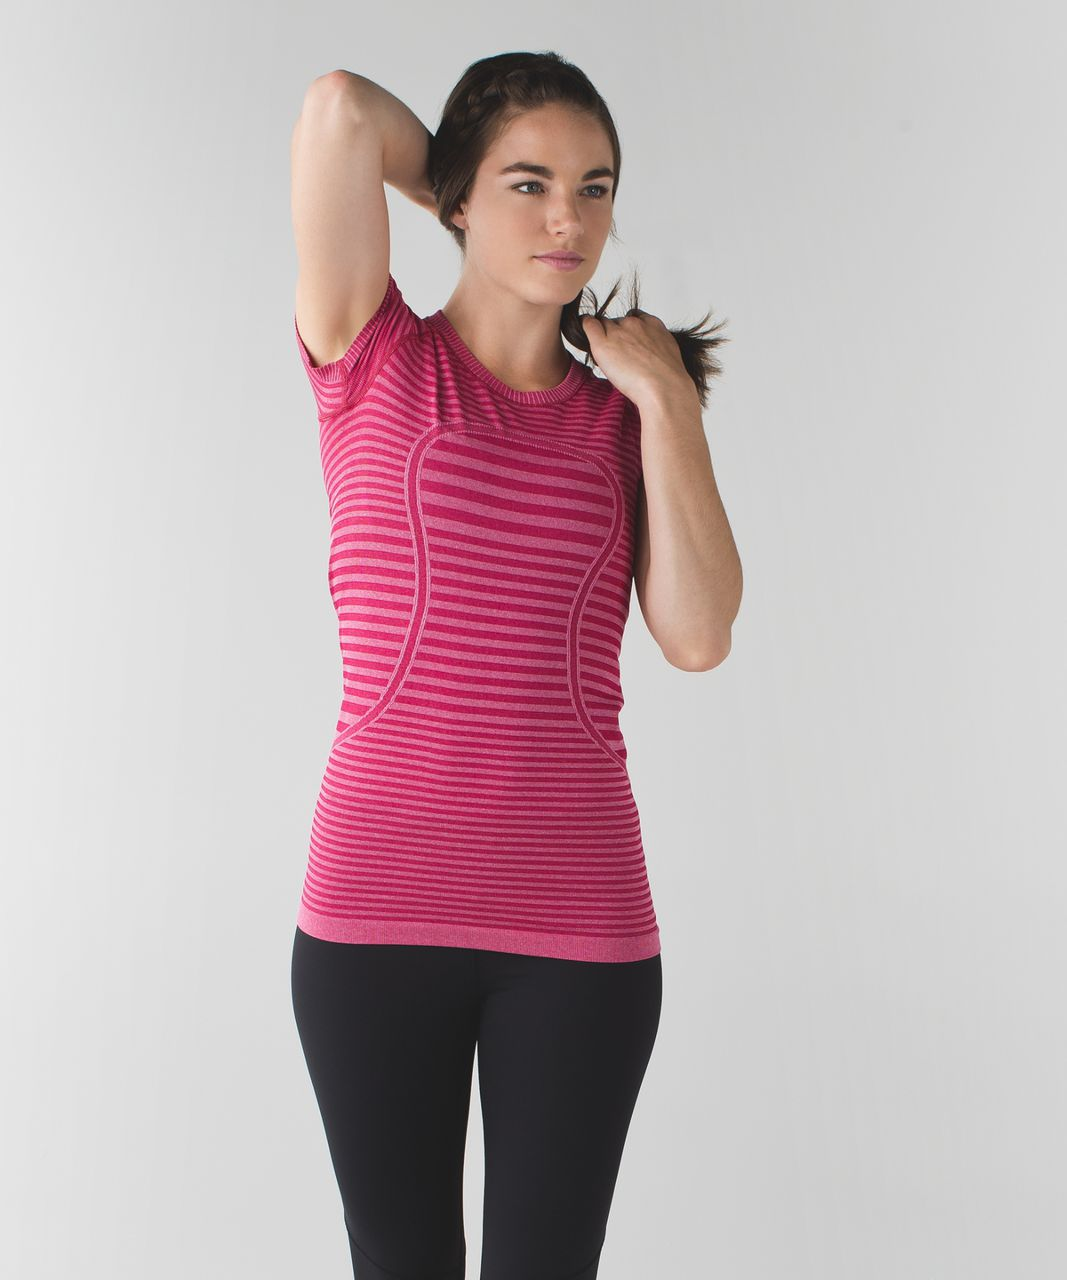 Lululemon Swiftly Tech Short Sleeve Crew - Heathered Berry Rumble